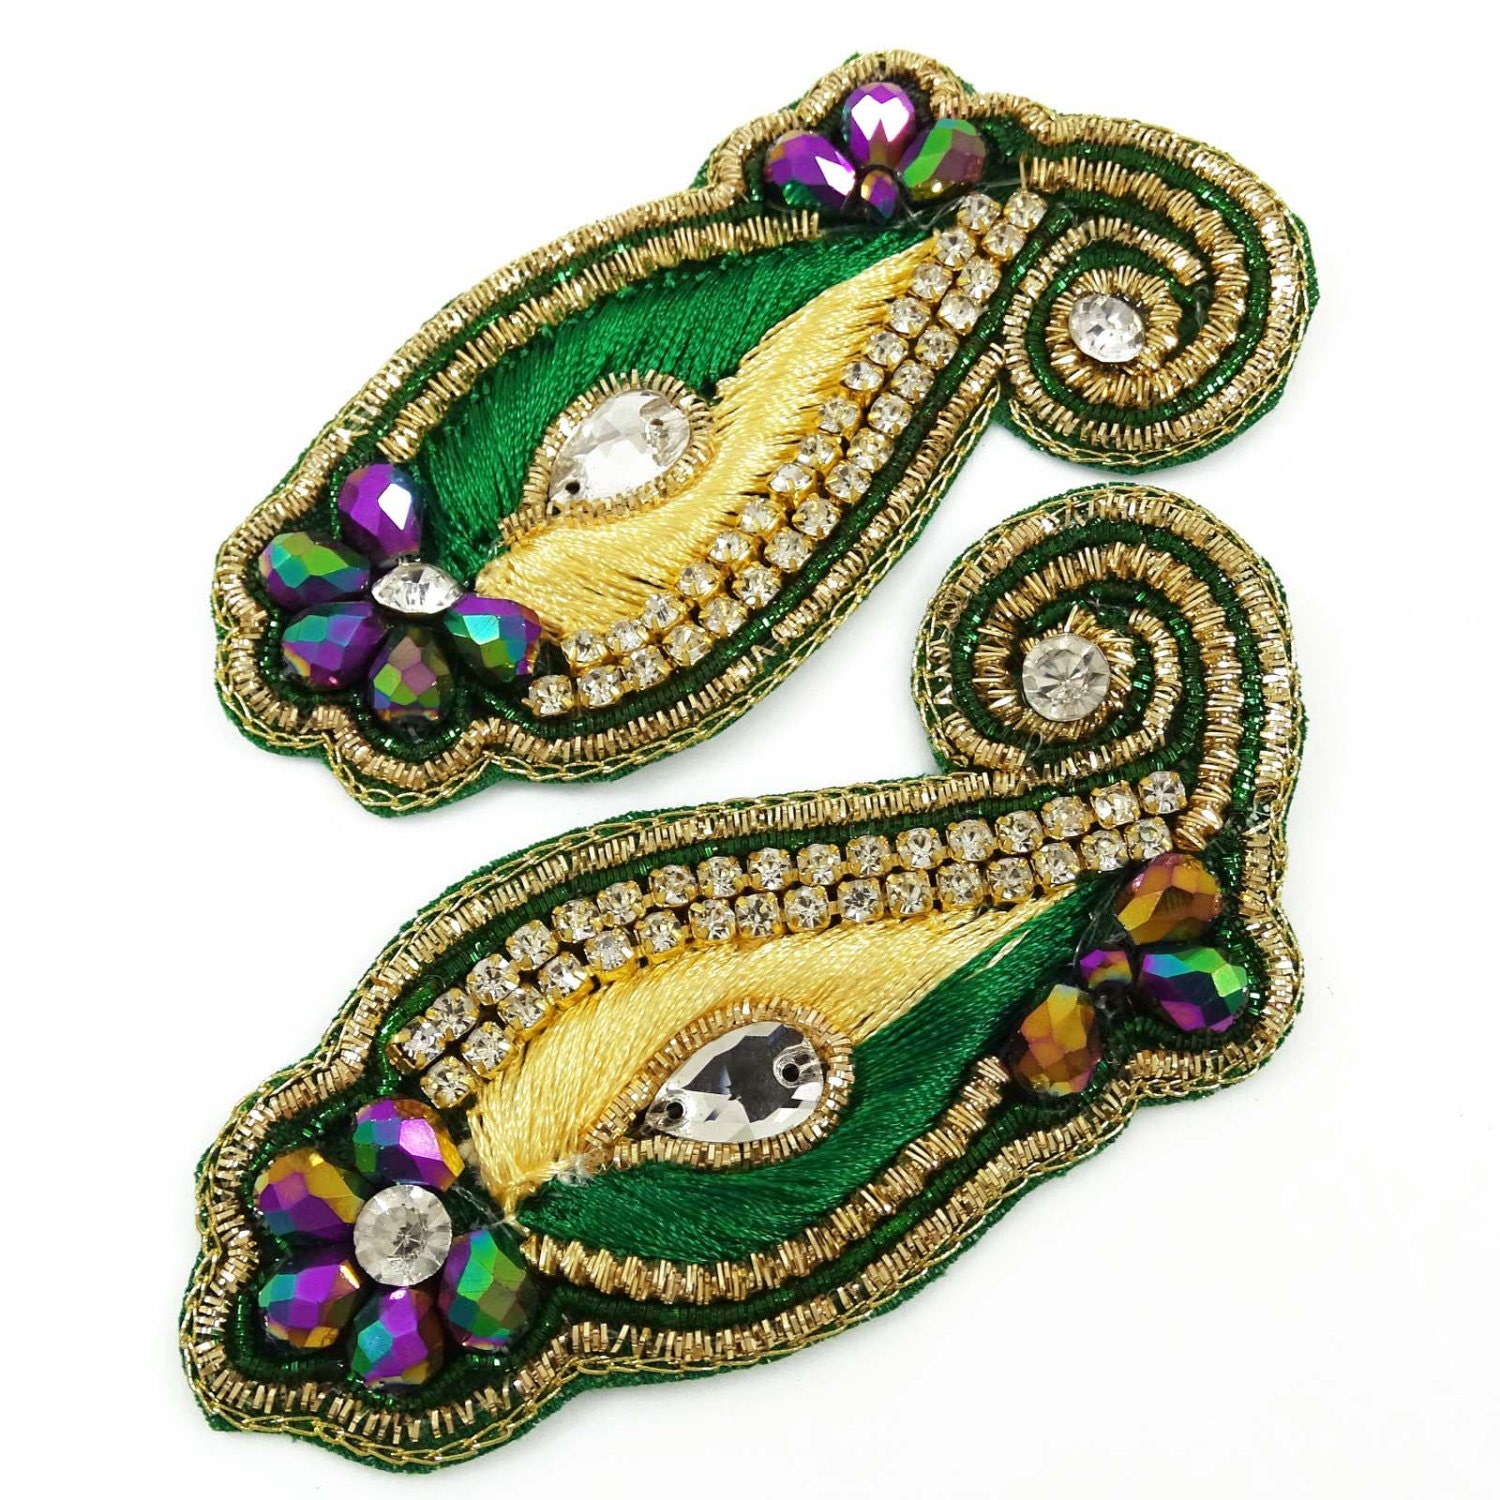 Beaded Decorative Appliques Royal Patch Applique Supply Crafting 1 Pair